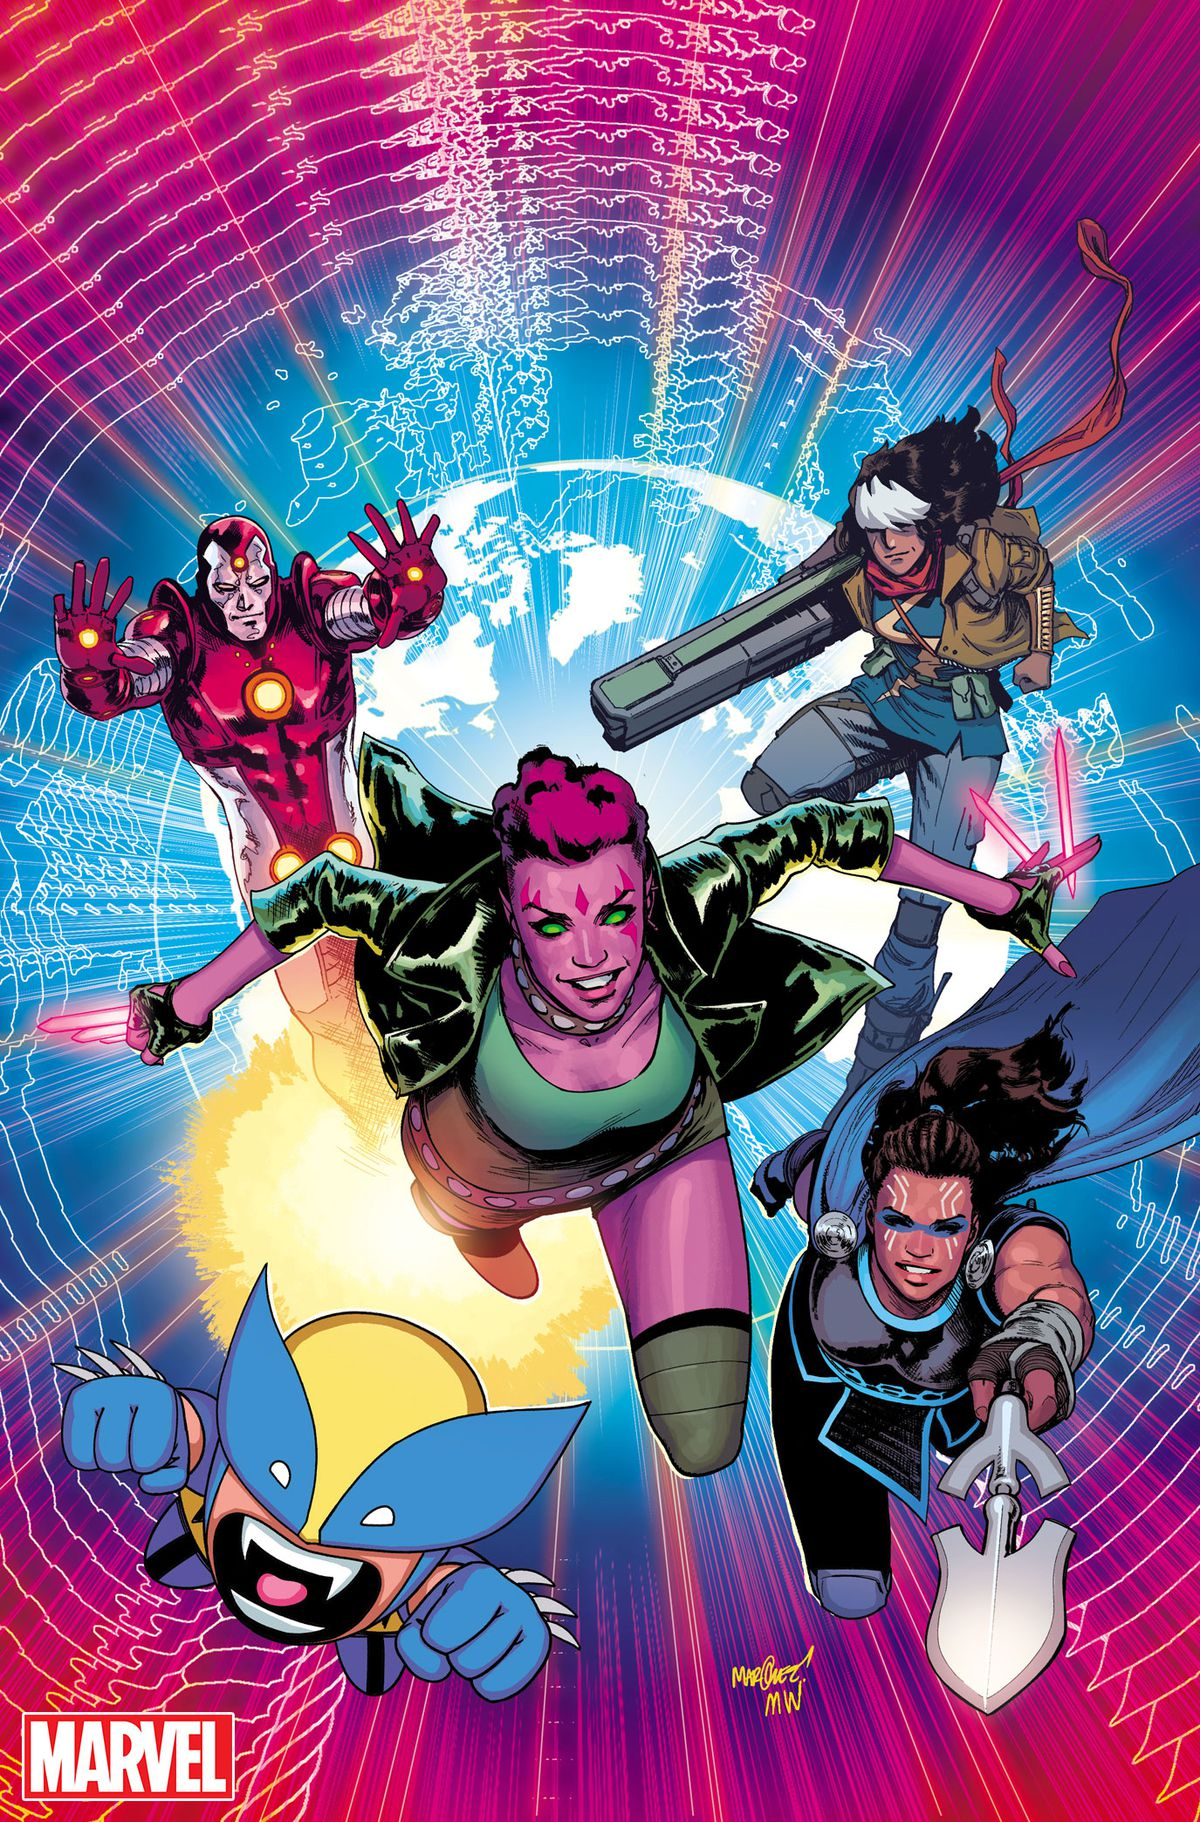 The Exiles, Iron Lad, Khan, Blink, Wolvie and Valkyrie, Marvel Comics 2018.